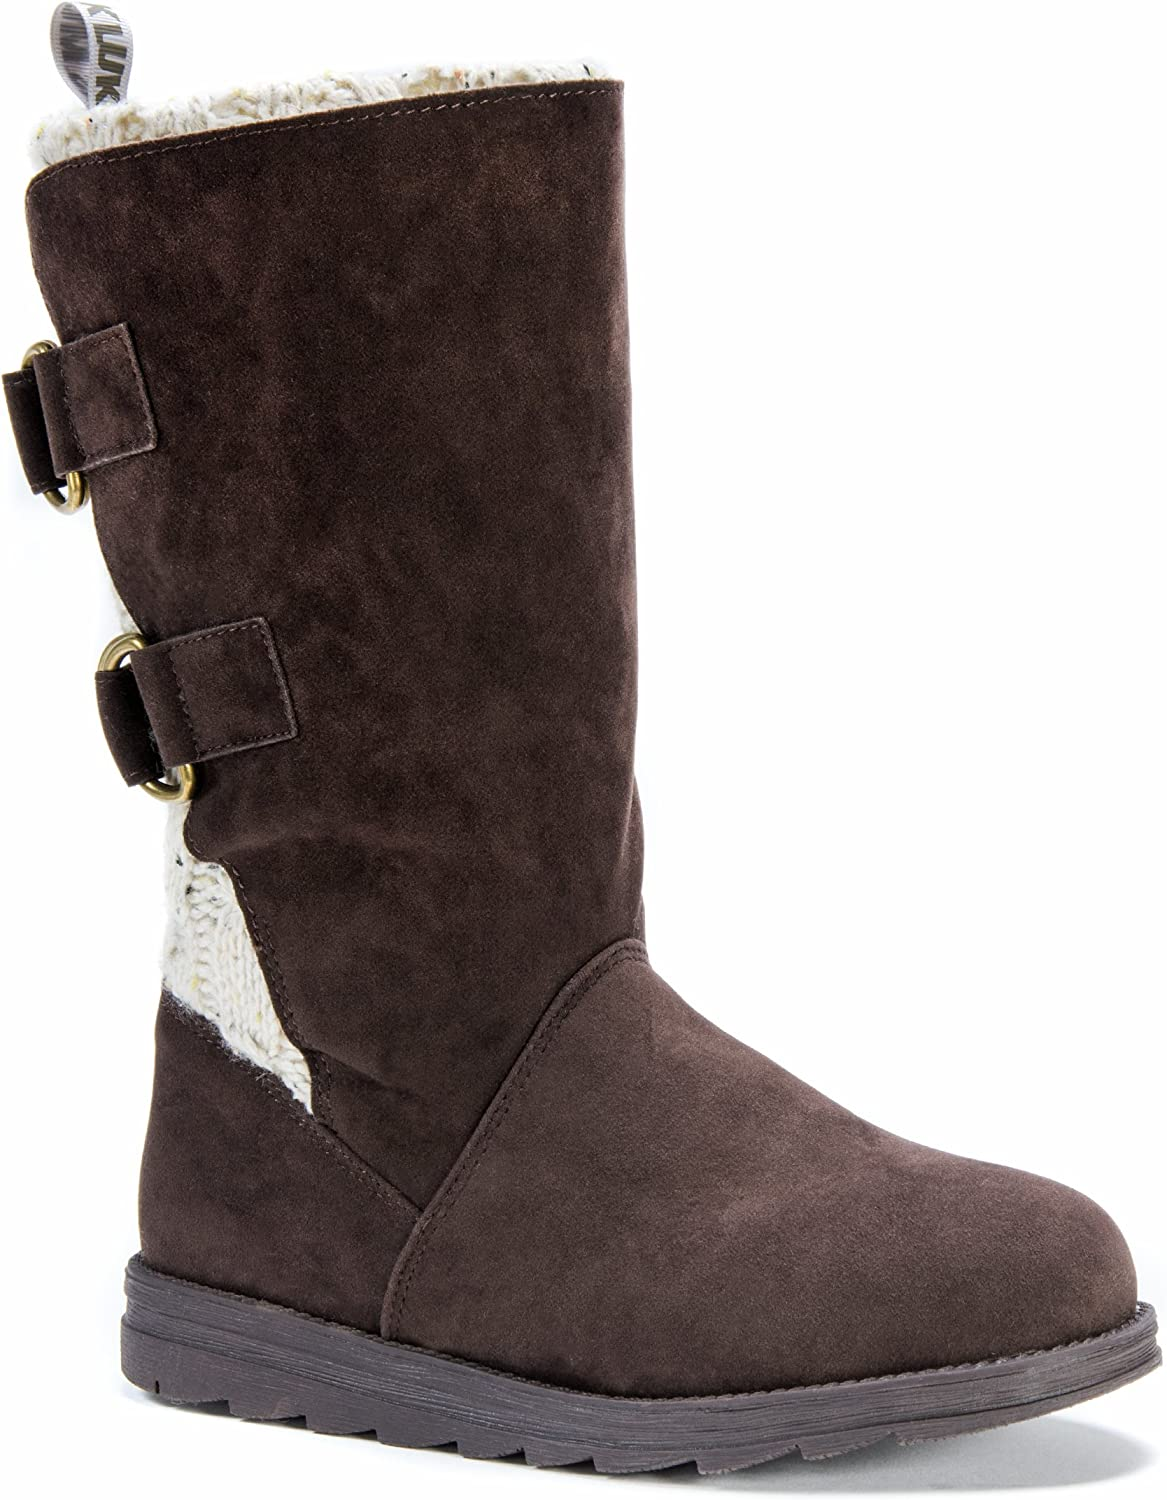 MUK LUKS Womens Women's Luna Boots Fashion Boot